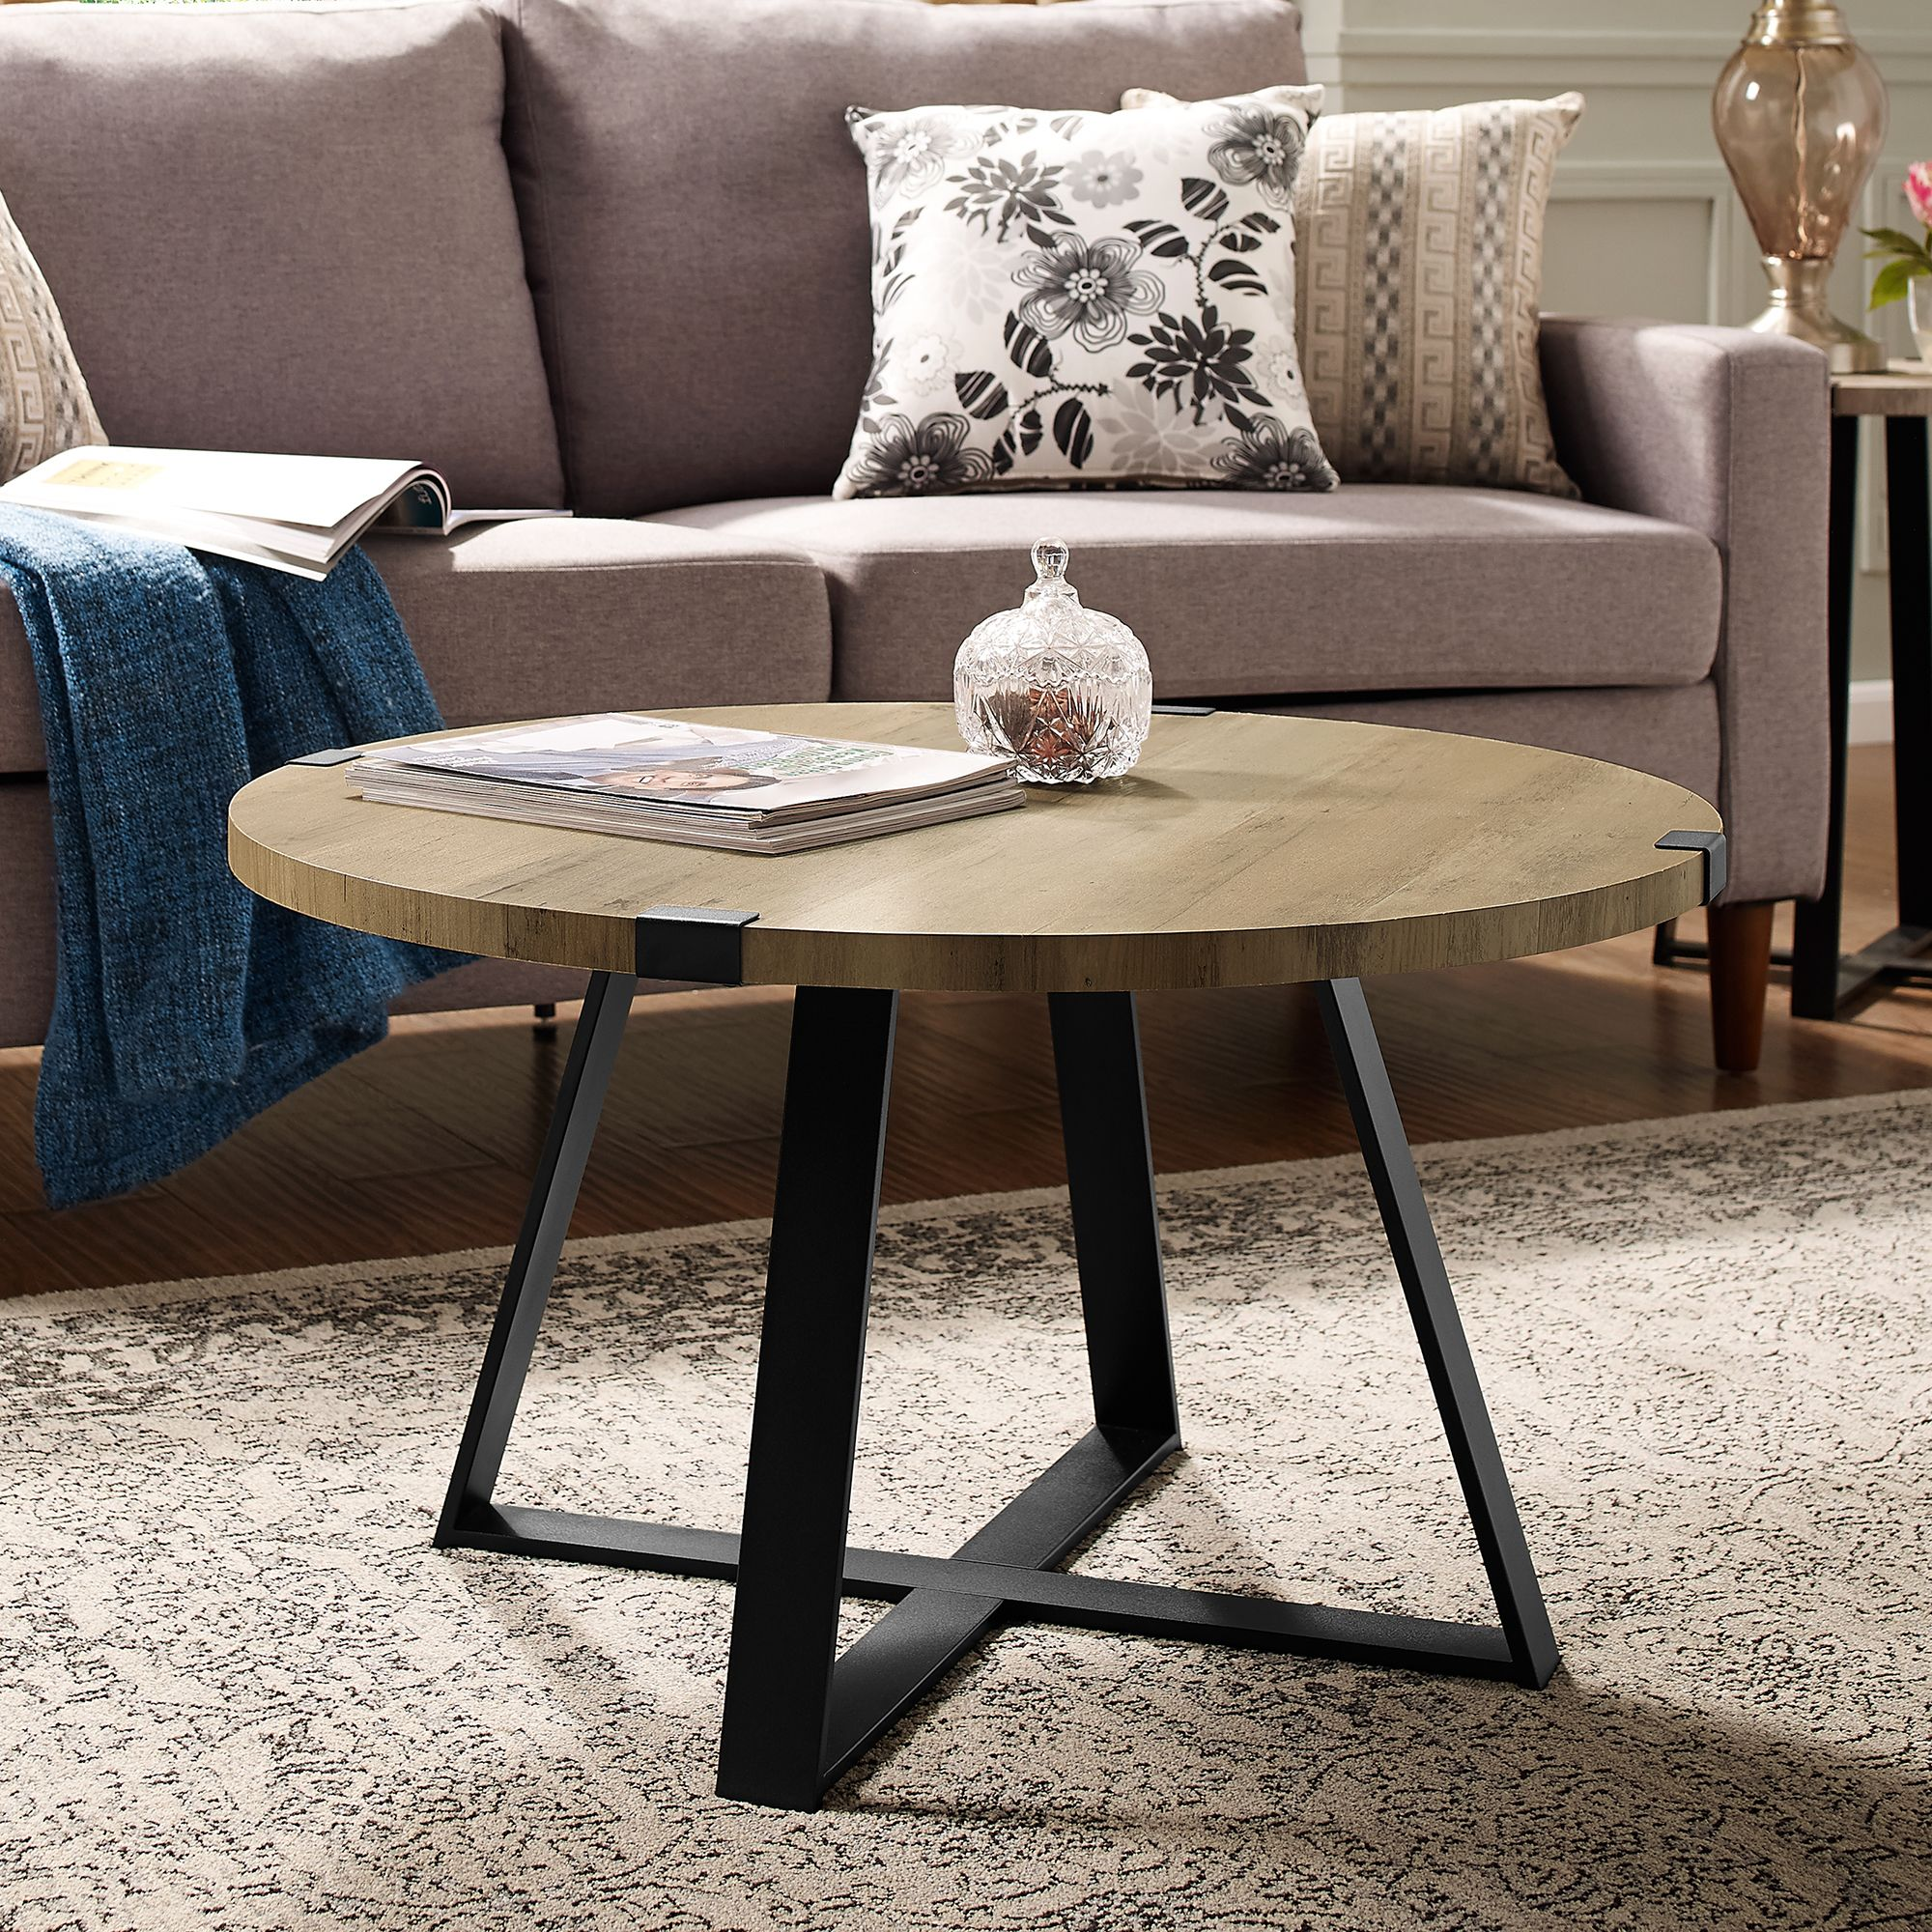 Manor Park 30 Rustic Round Coffee Table Reclaimed Farmhouse Walmart Com Coffee Table Round Coffee Table Reclaimed Wood Coffee Table [ 2000 x 2000 Pixel ]